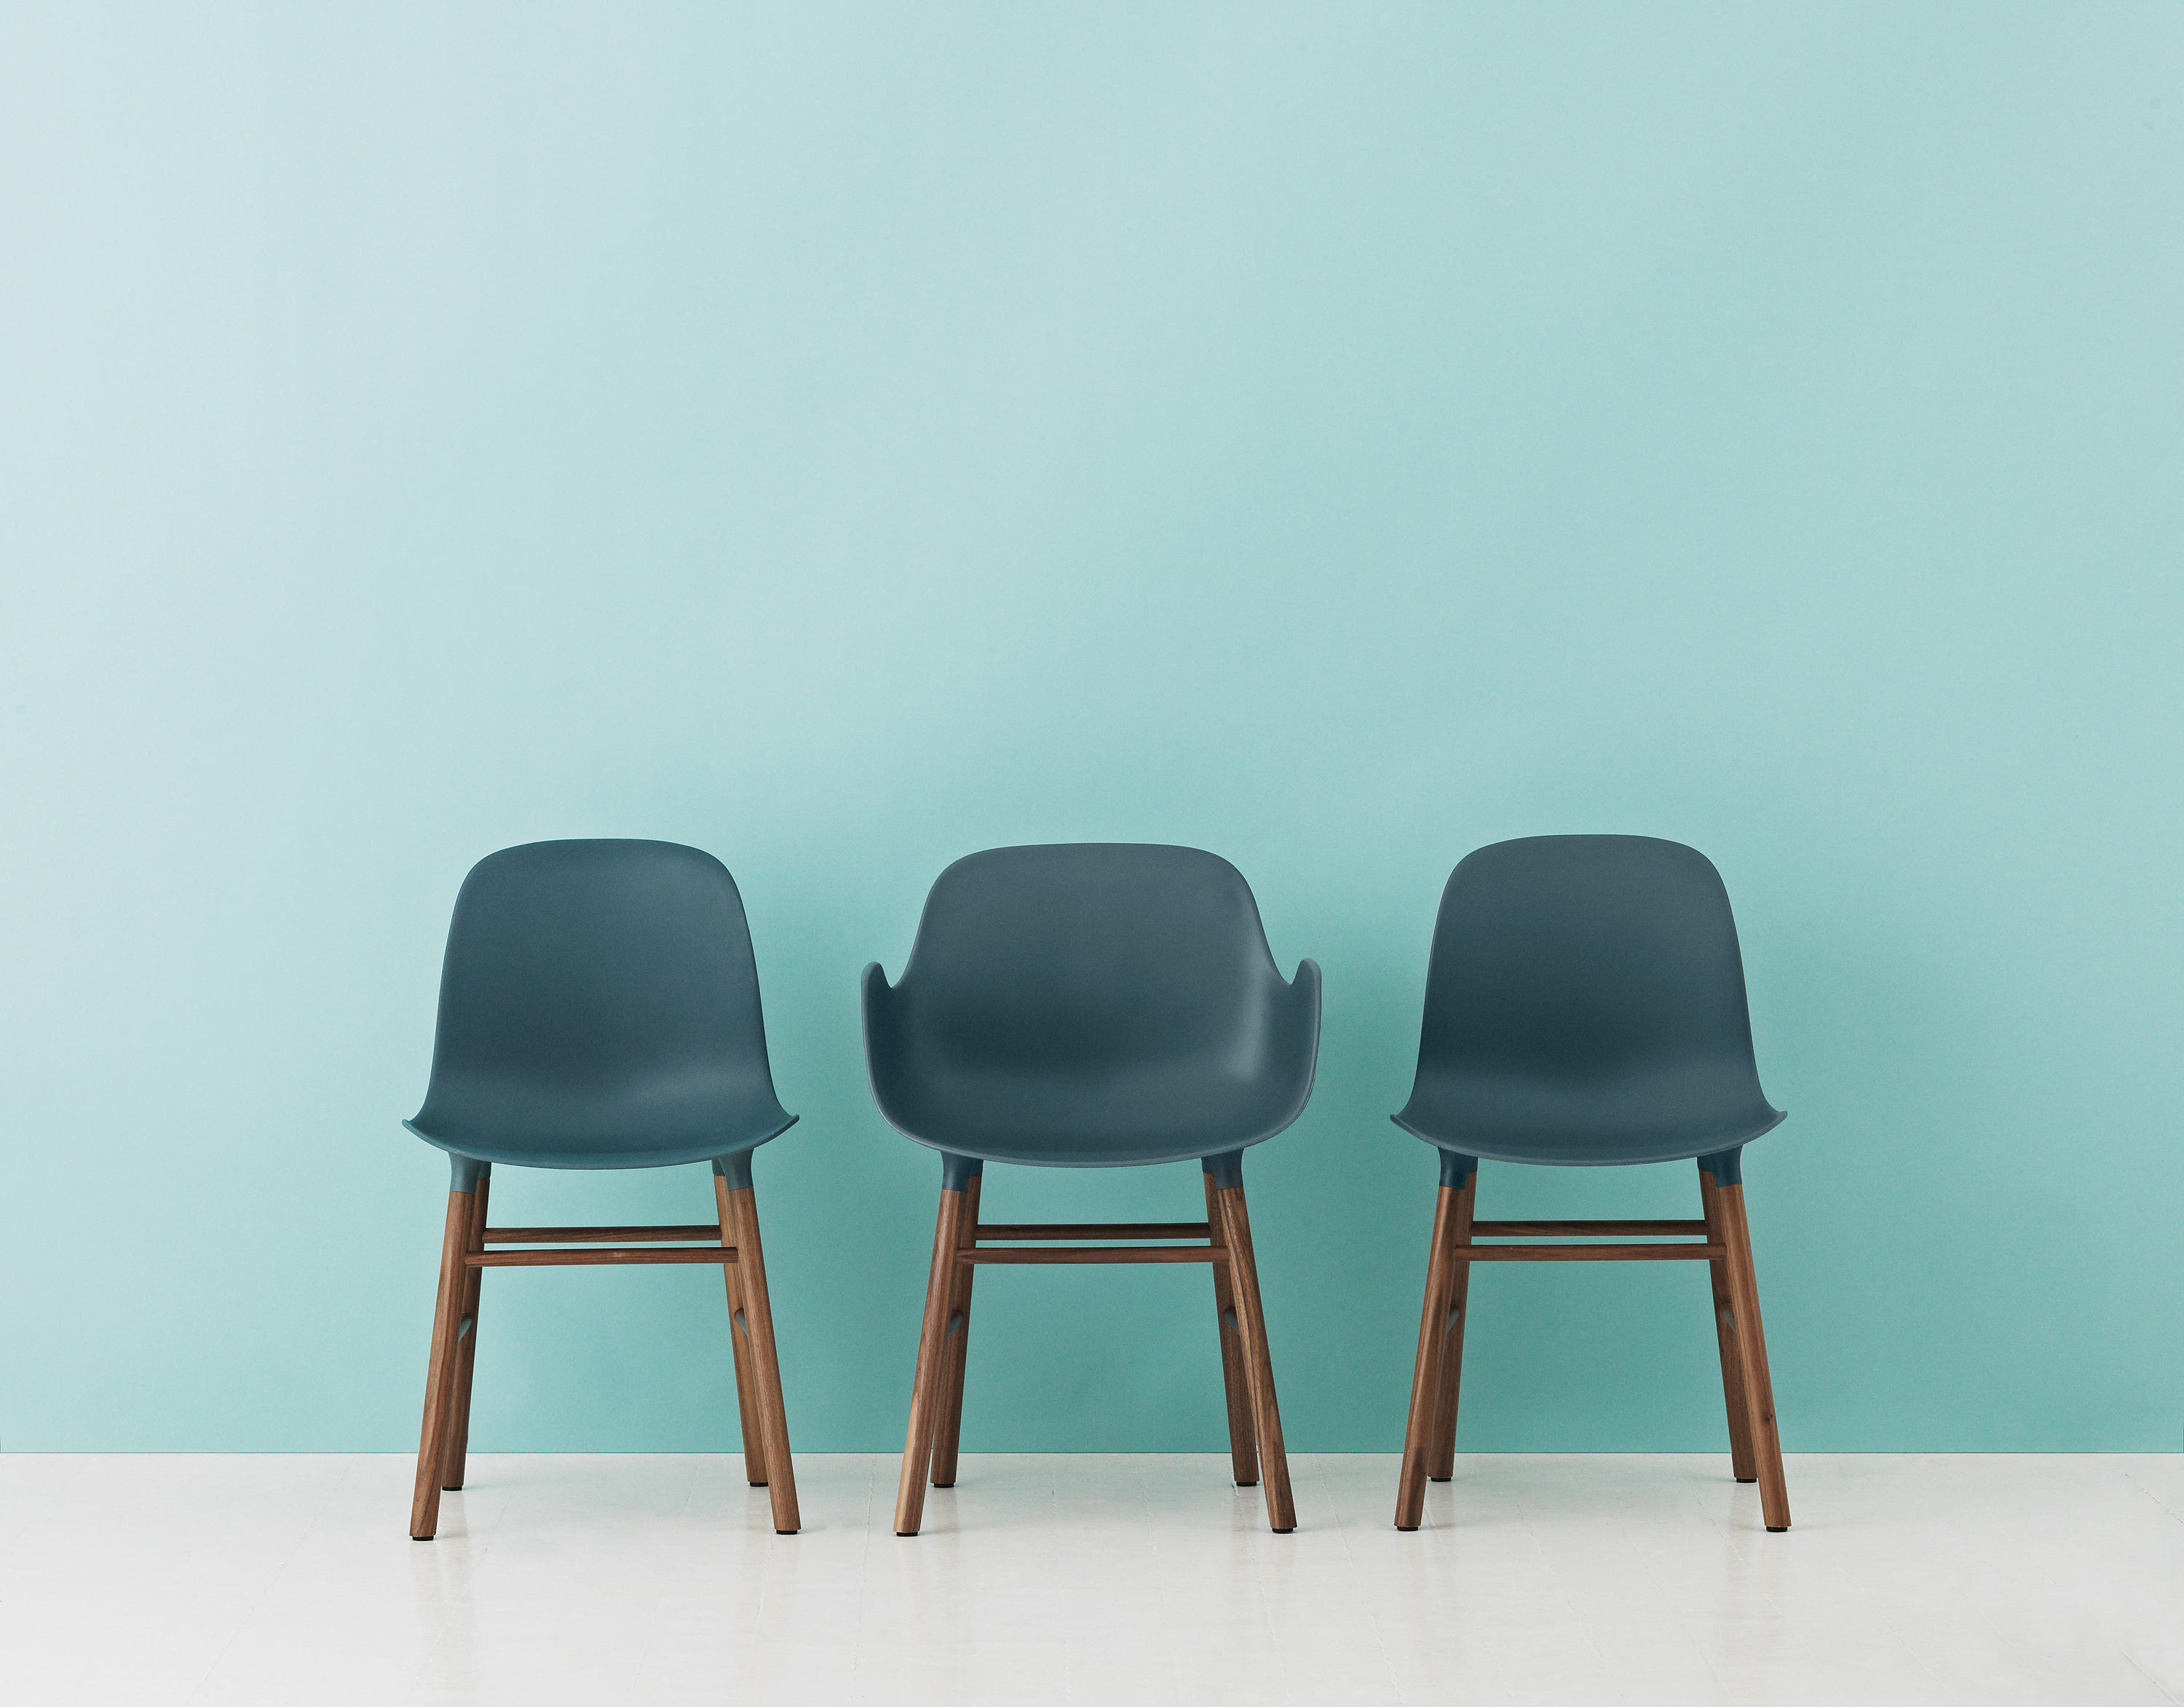 form chair visitors chairs side chairs from normann copenhagen architonic. Black Bedroom Furniture Sets. Home Design Ideas